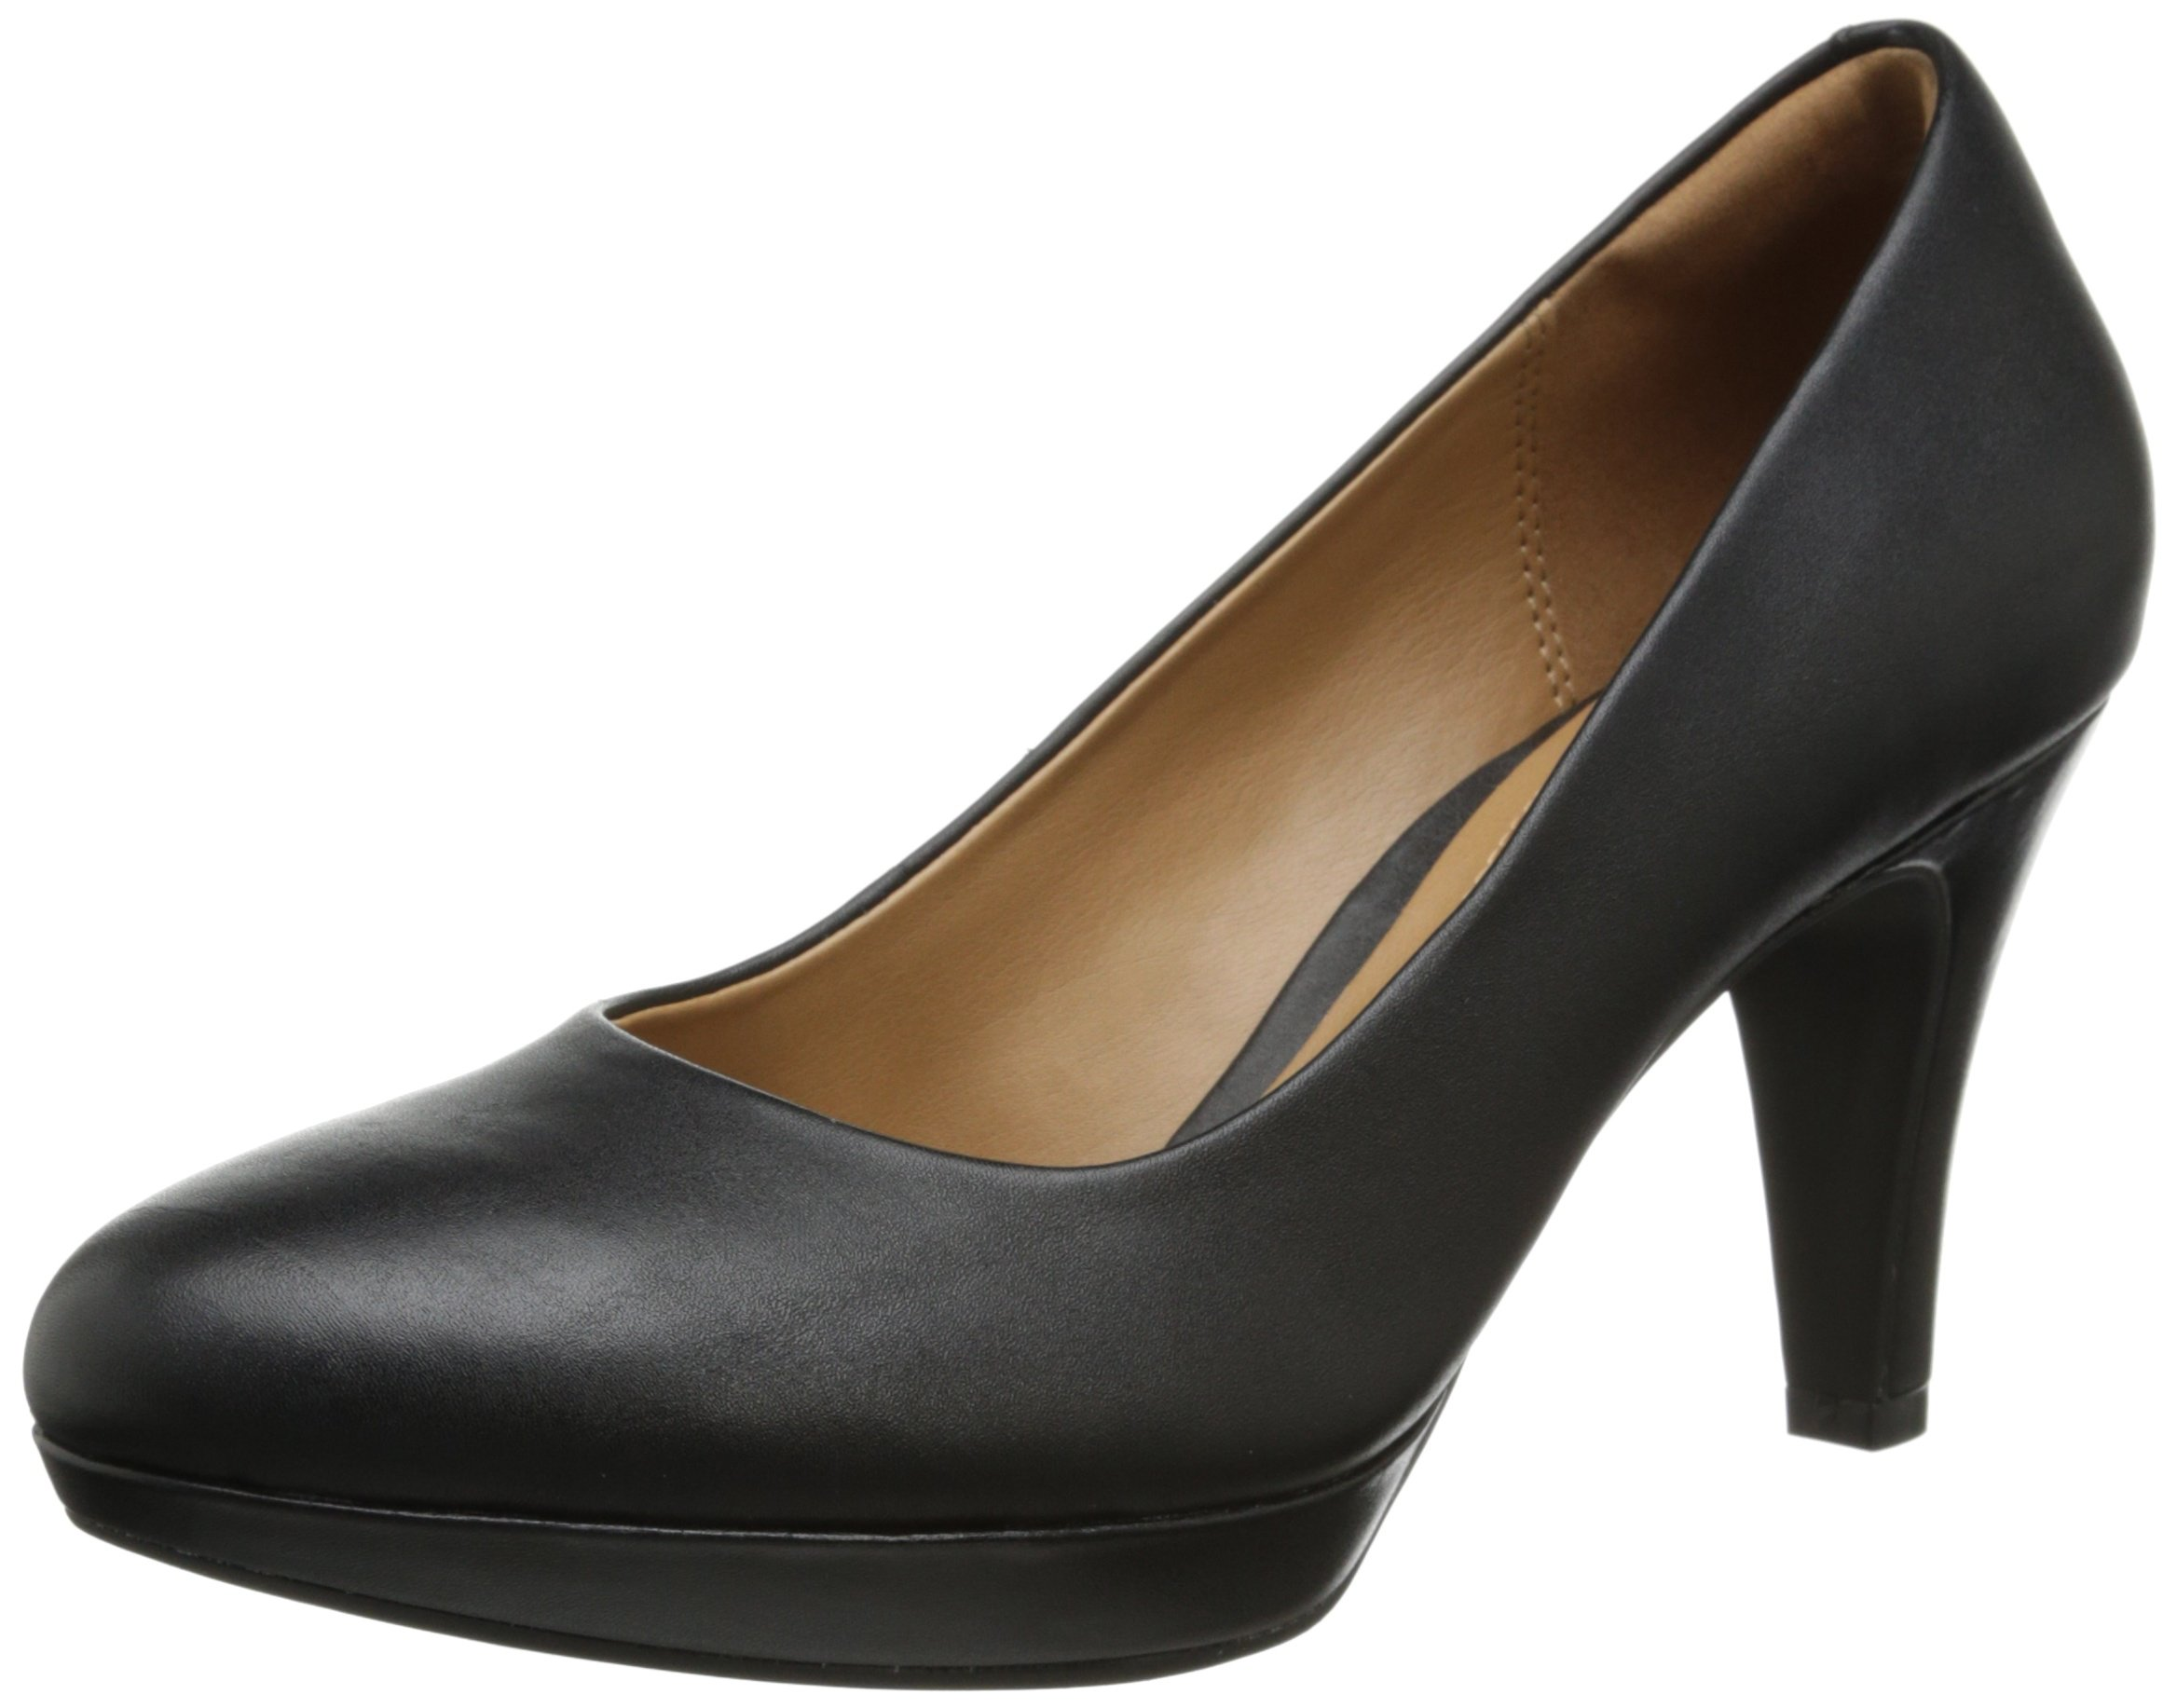 CLARKS Women's Brier Dolly Dress Pump, Black Leather, 7.5 M US